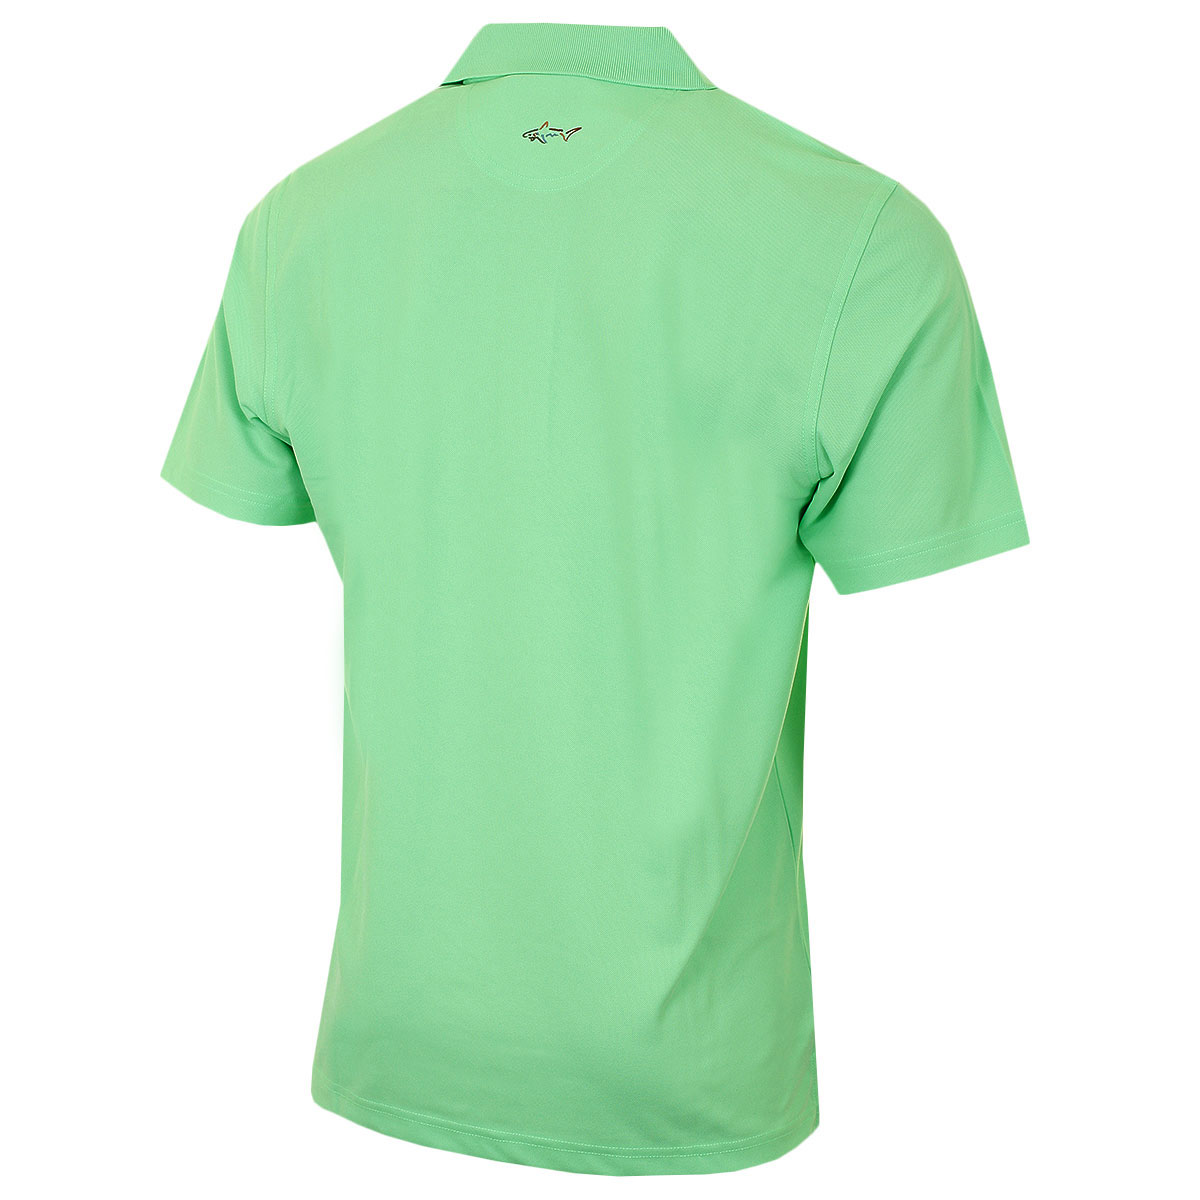 Greg-Norman-Mens-KX04-Performance-Micro-Pique-Golf-Polo-Shirt-28-OFF-RRP thumbnail 18